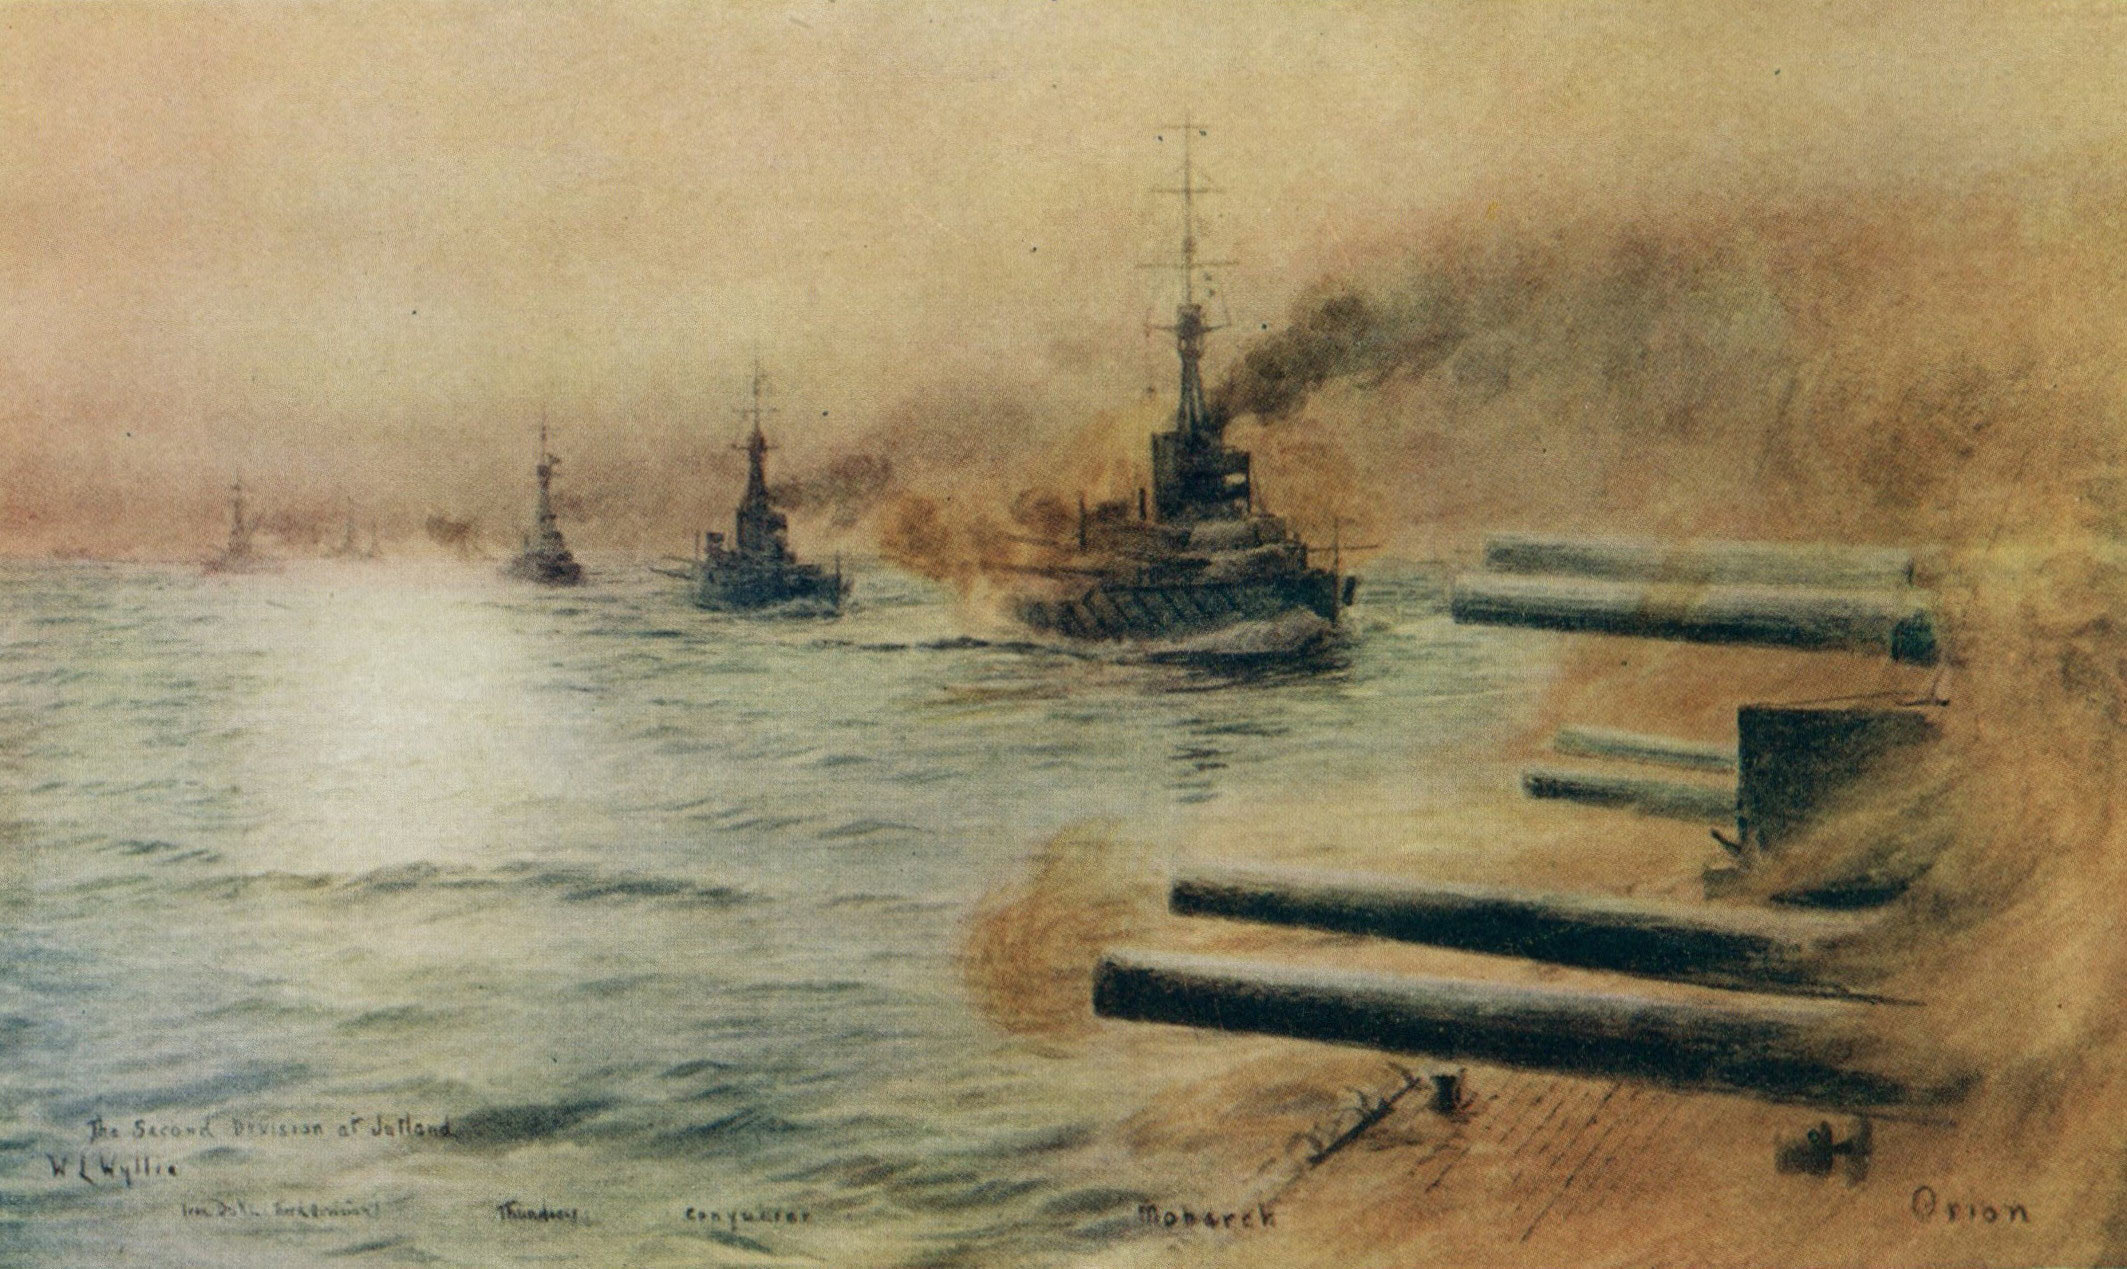 British 2nd Division of Battleships at the Battle of Jutland 31st May 1916: from the right HMS Orion Monarch Conqueror and Thunderer: picture by Lionel Wyllie: to buy this picture click here